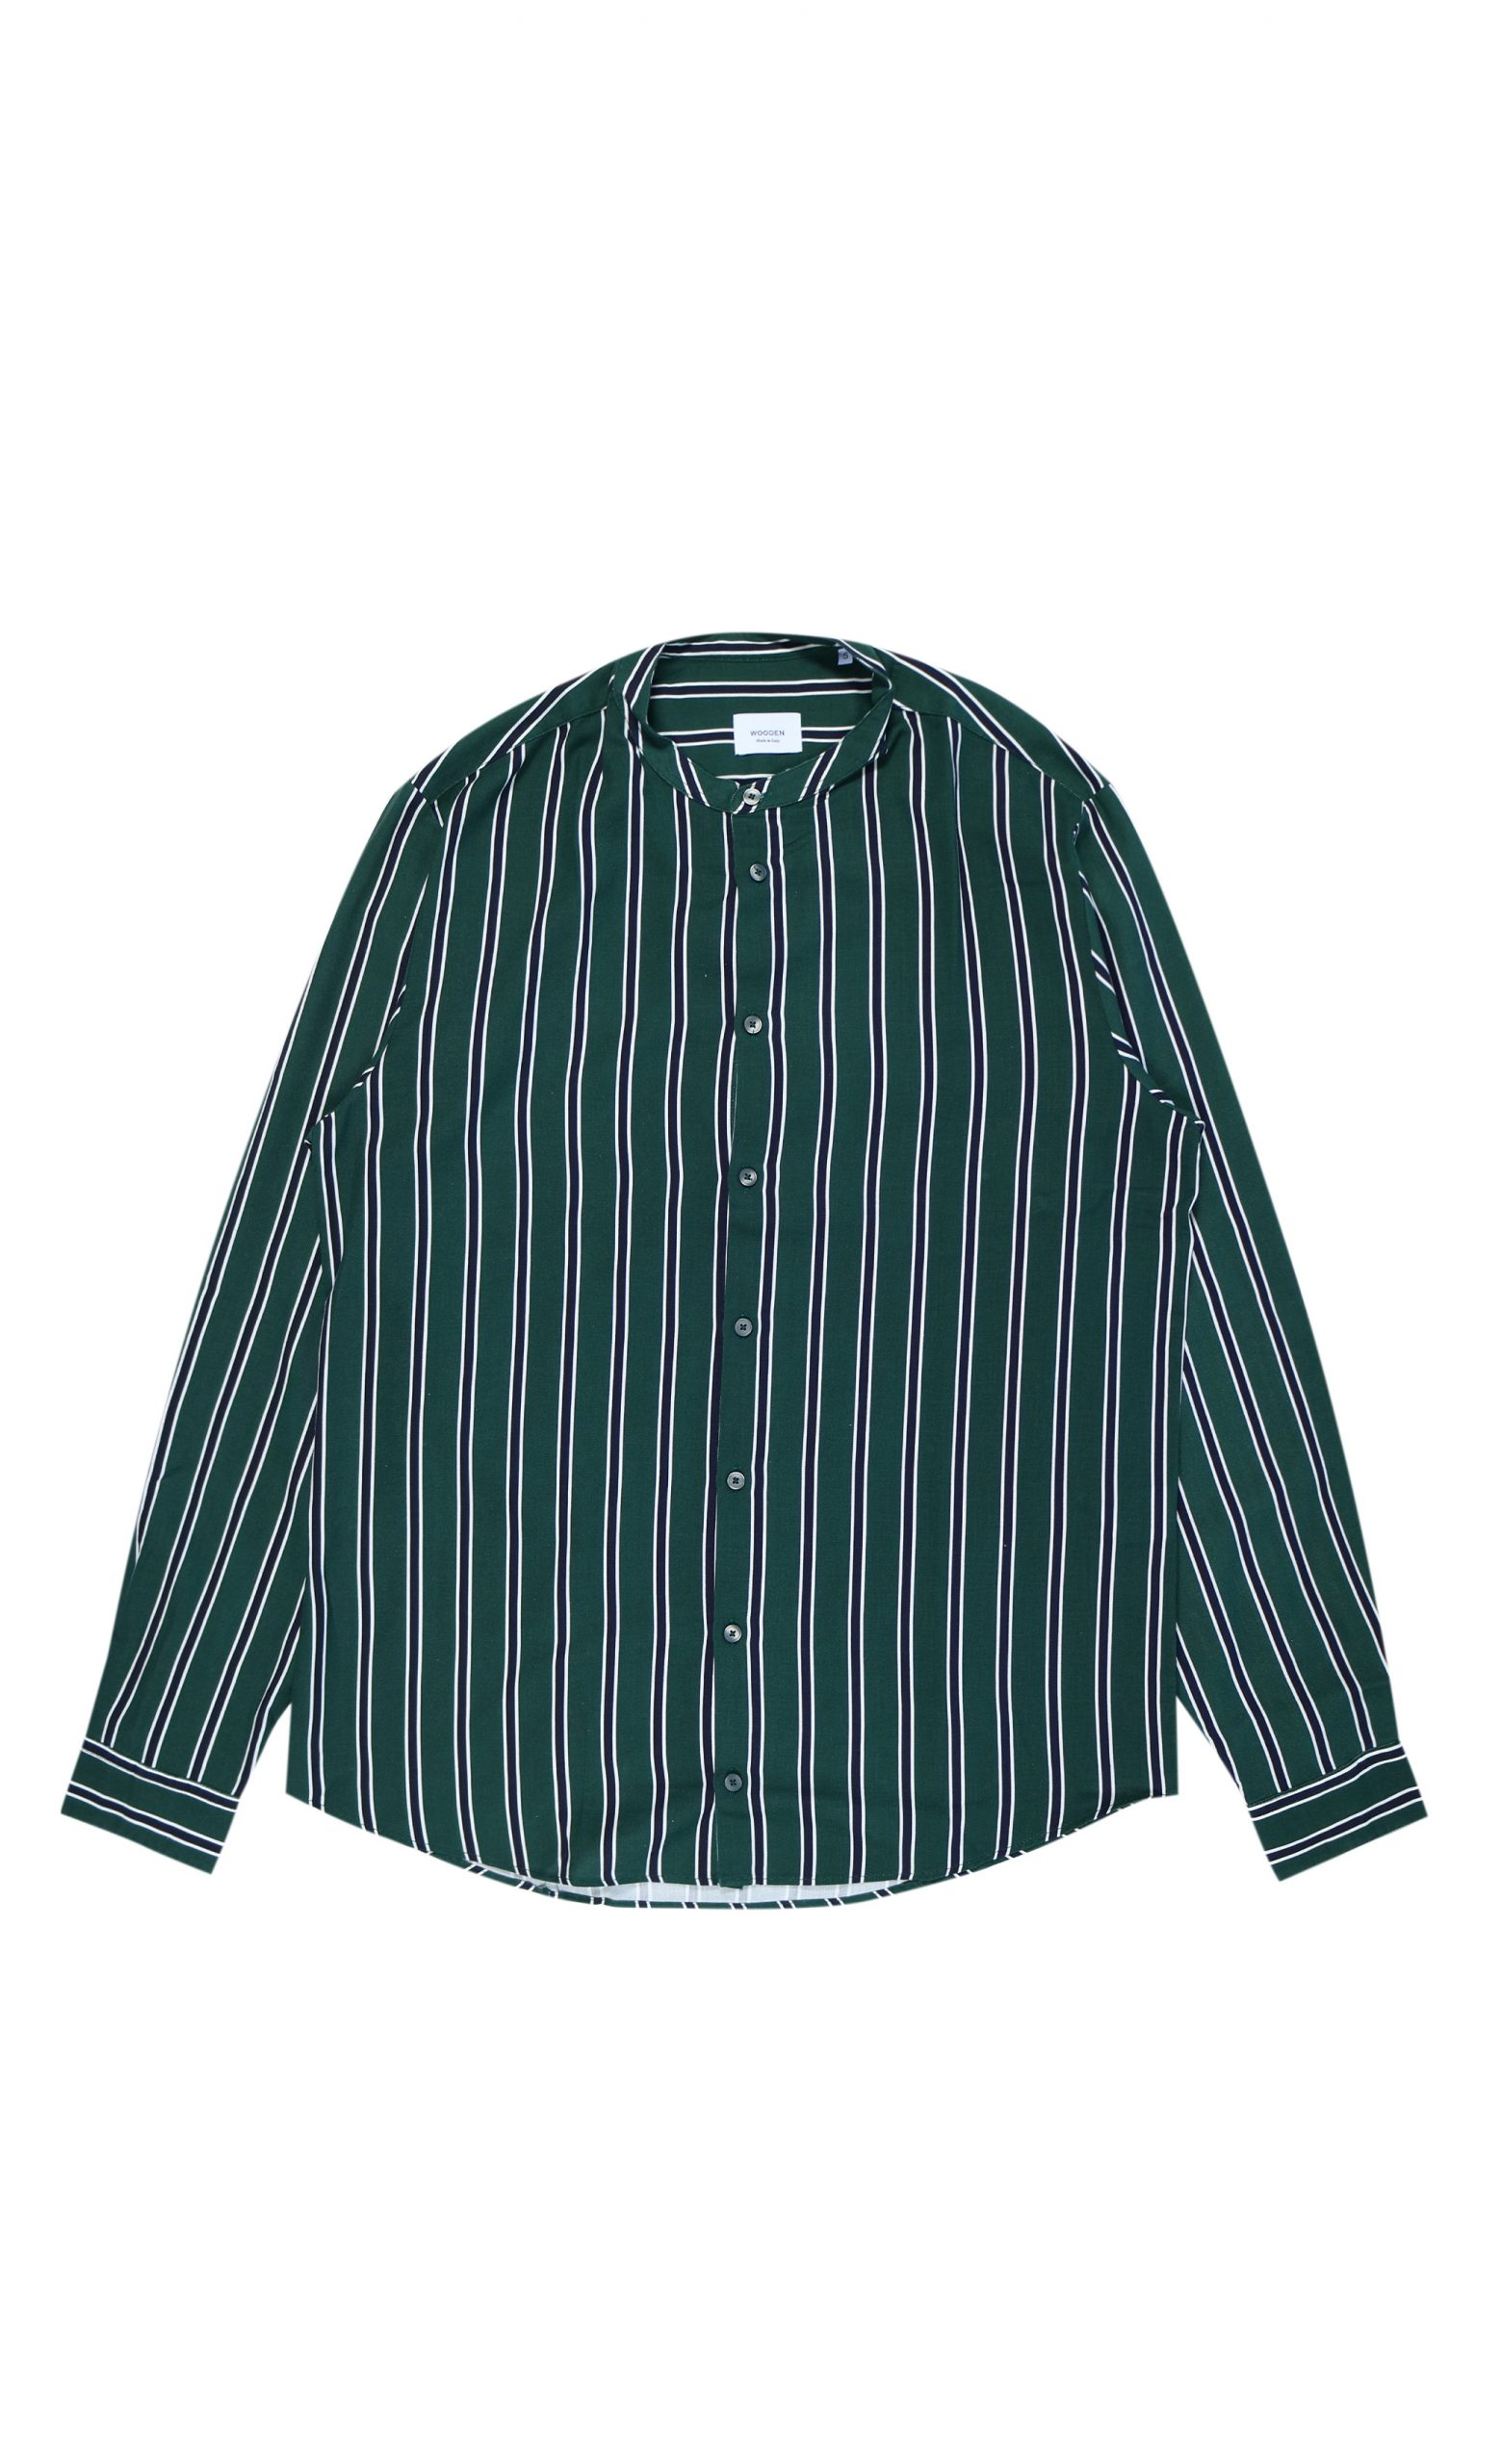 Camicia Green Stripes | Wooden Store